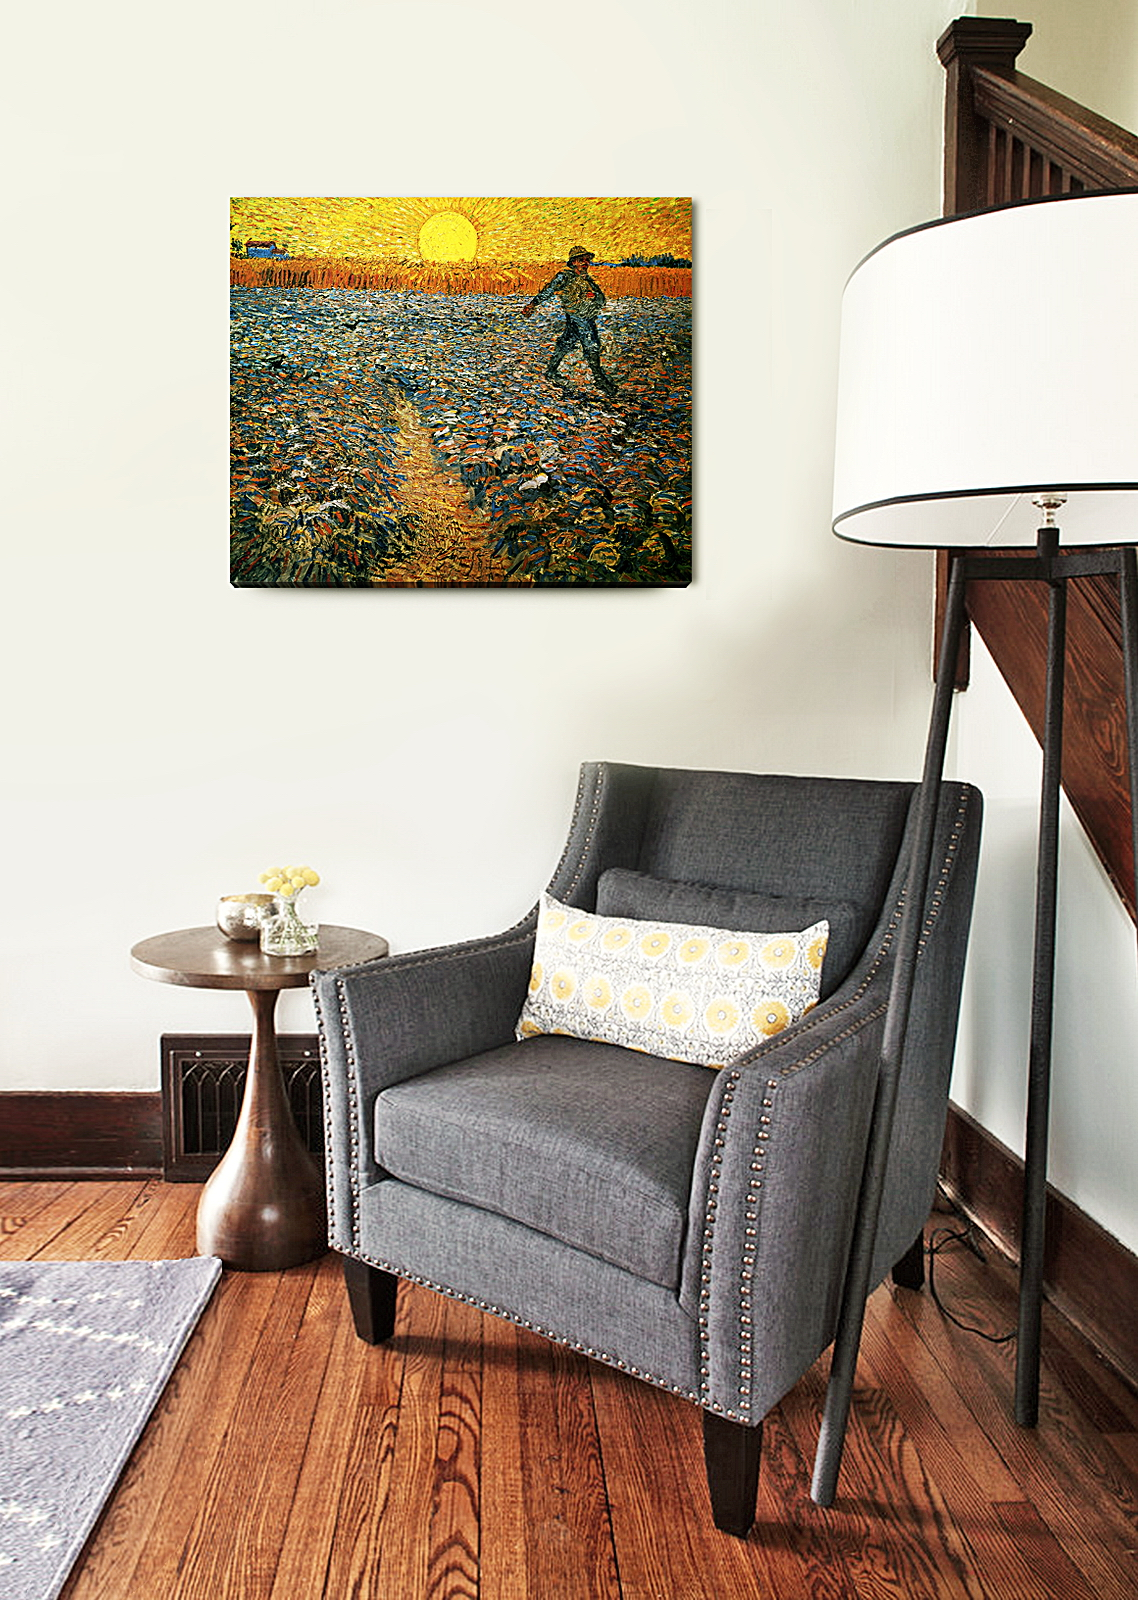 DecorArts The Sower by Van Gogh The Van Gogh Giclee Print Stretched Canvas